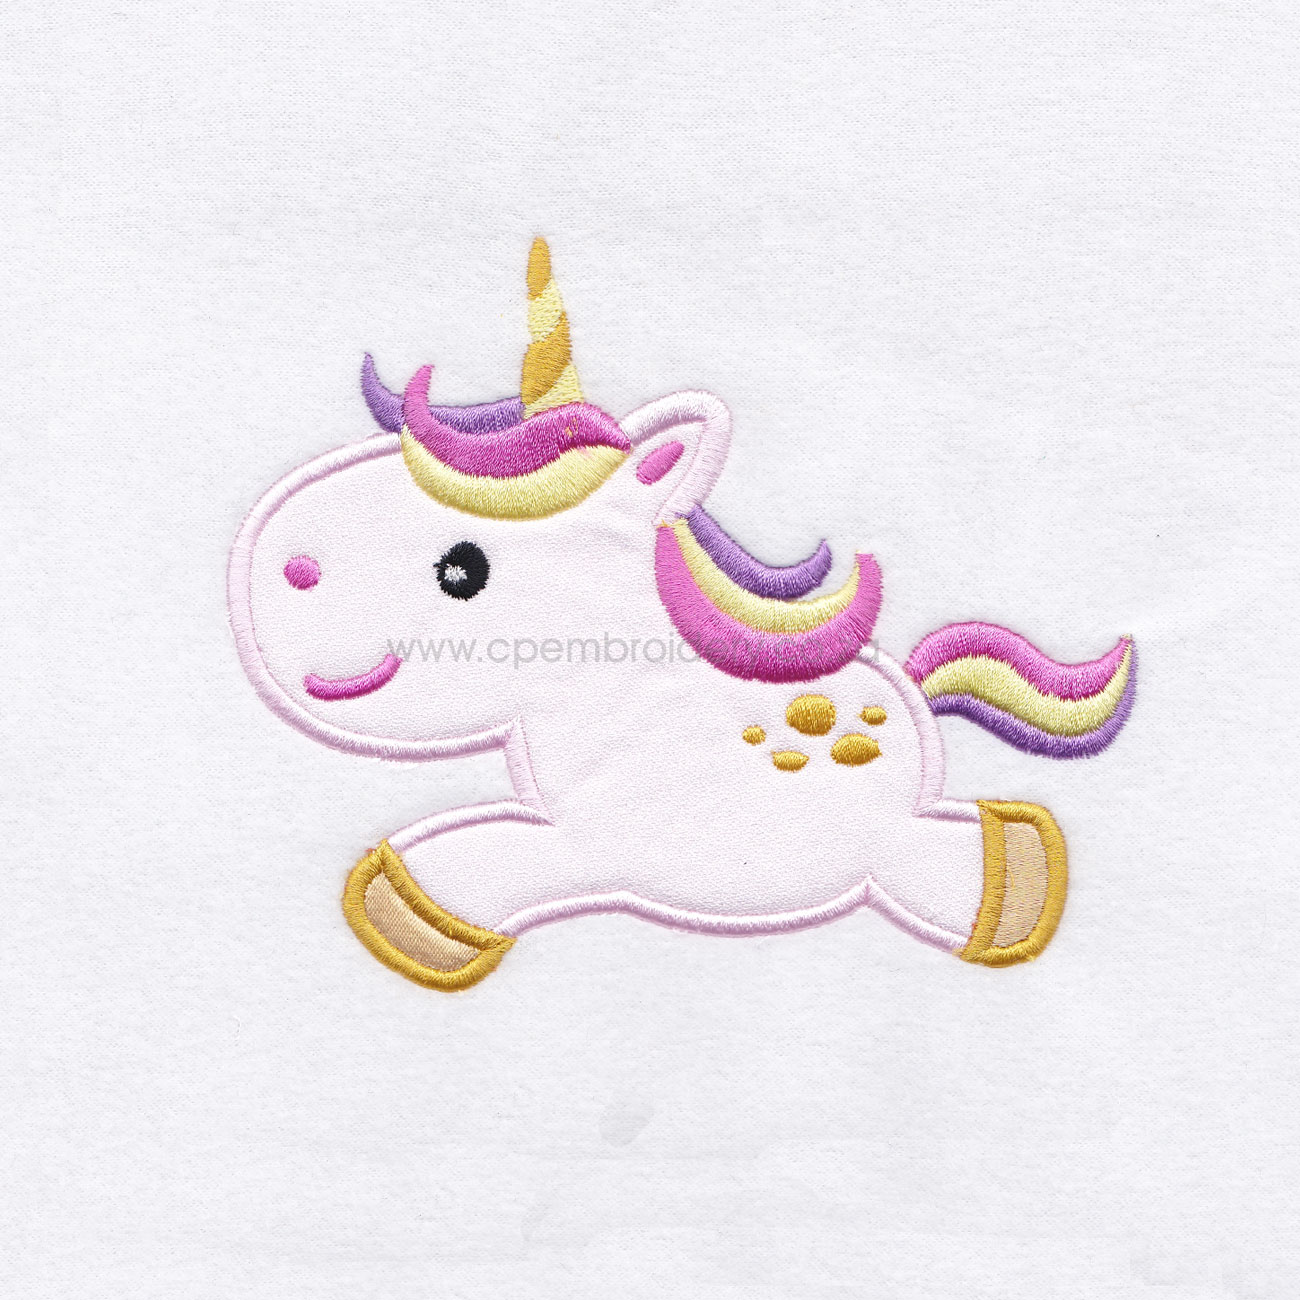 baby pony unicorn one horn mythical horse looking back machine embroidery download design